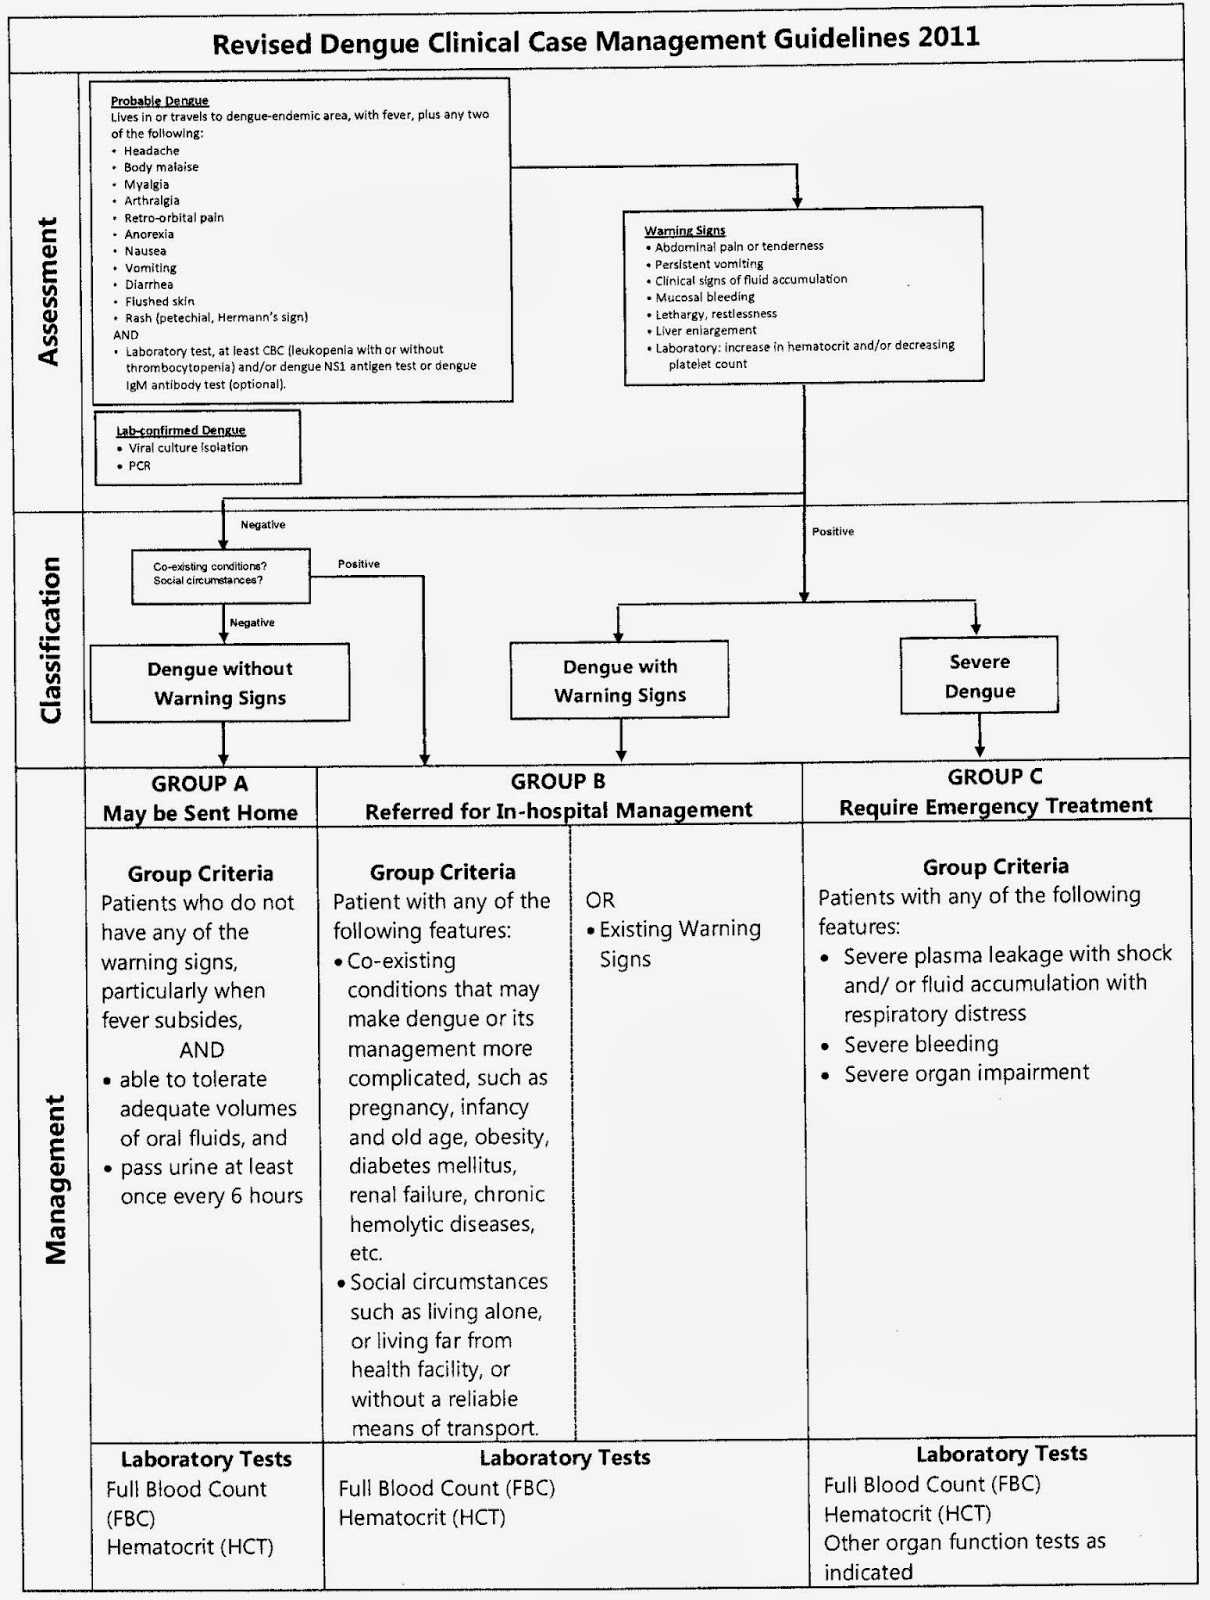 Public health resources full diagram of revised dengue clinical public health resources full diagram of revised dengue clinical case management guidelines ccuart Gallery